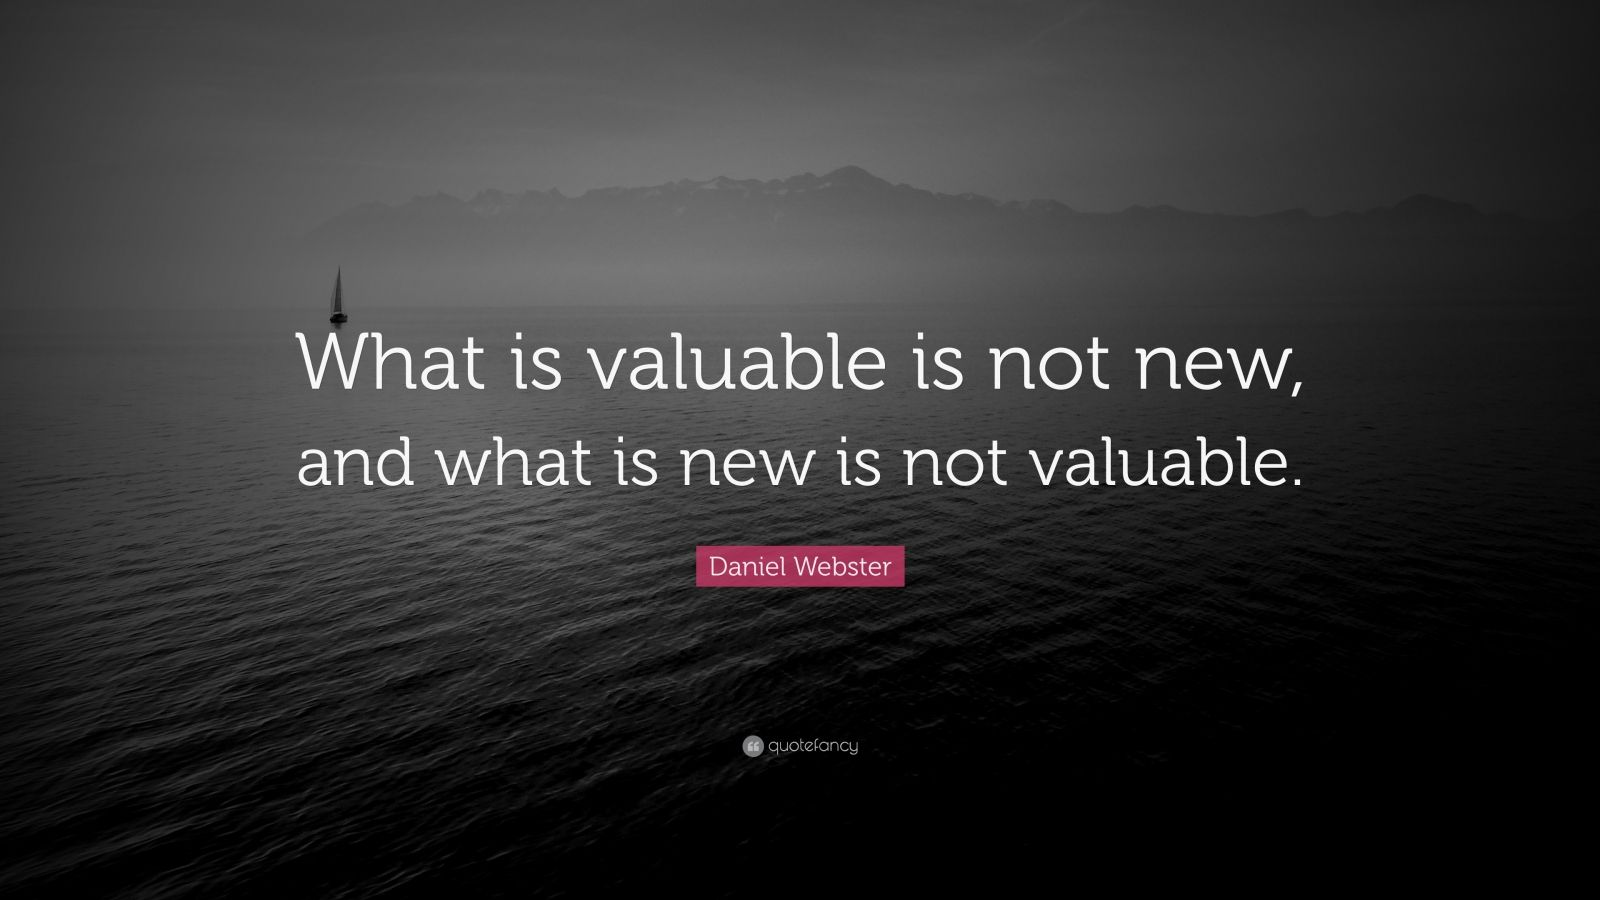 """Daniel Webster Quote: """"What is valuable is not new, and what is new is not valuable."""""""